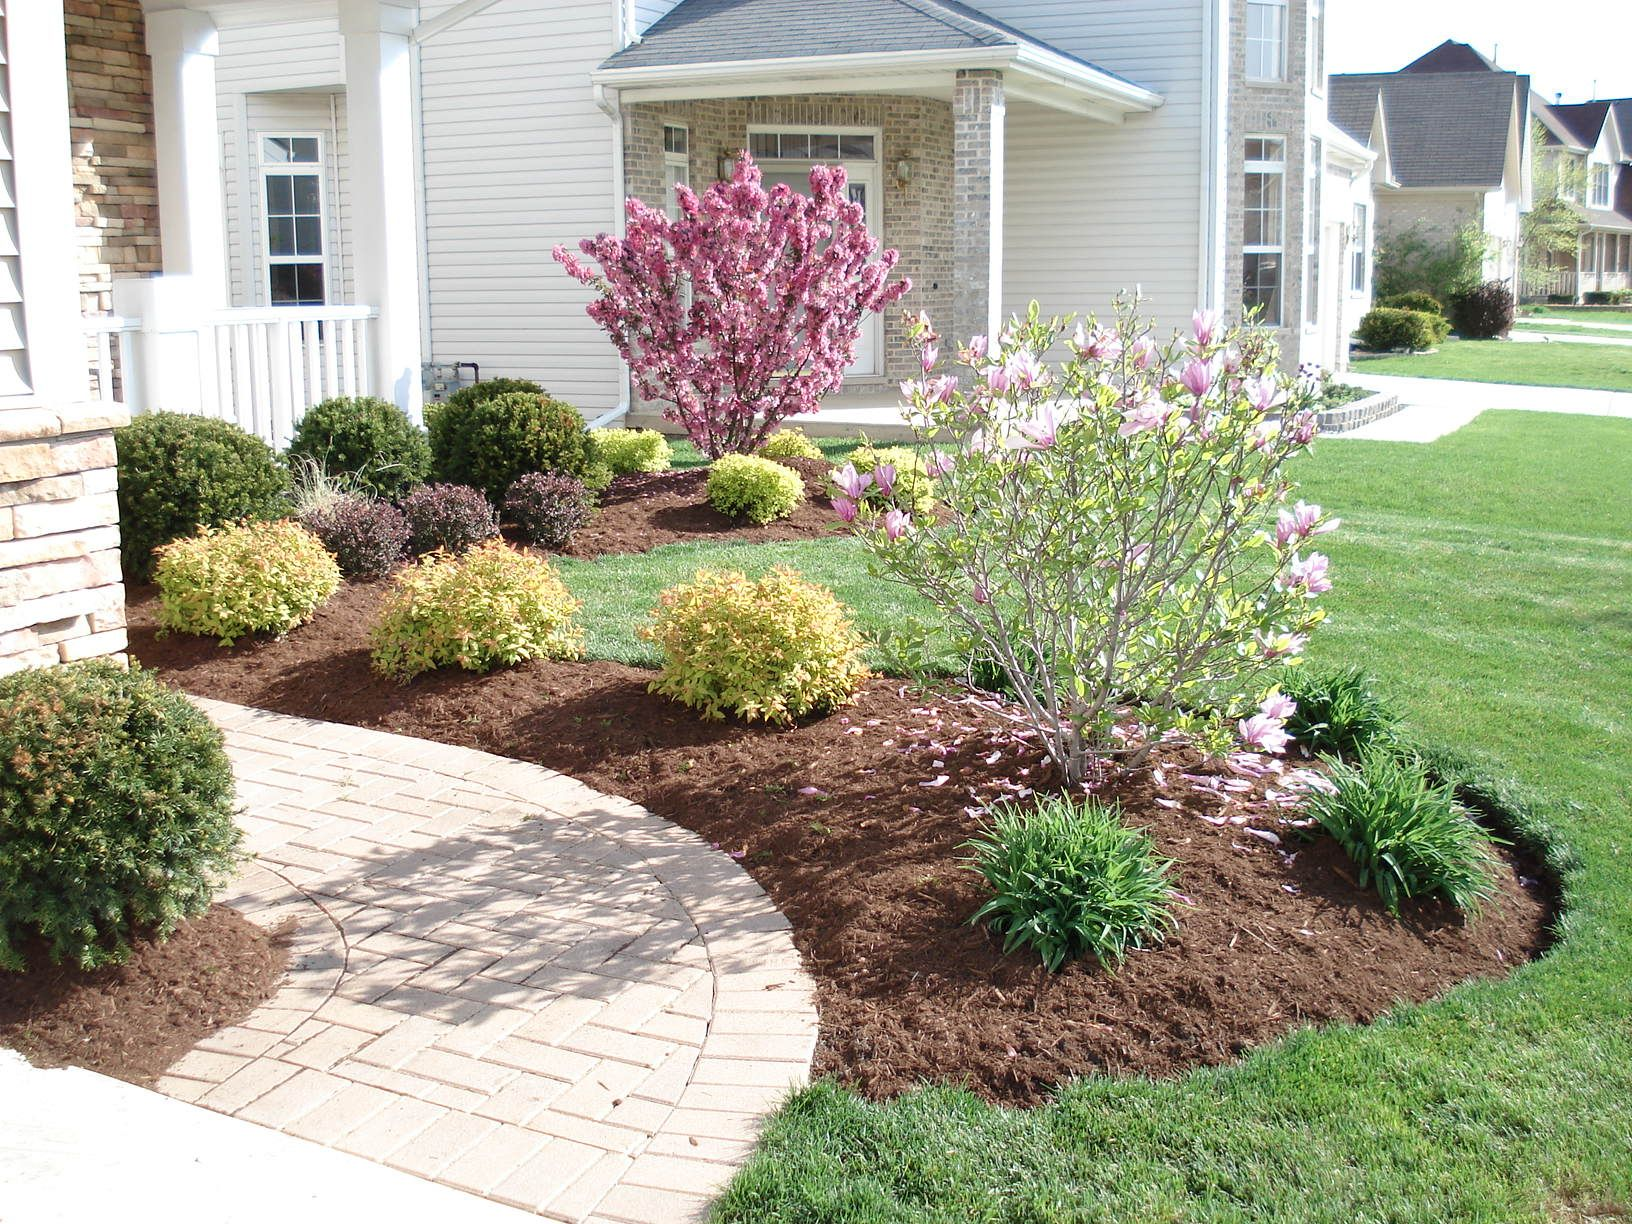 Best 25+ Simple landscaping ideas ideas on Pinterest